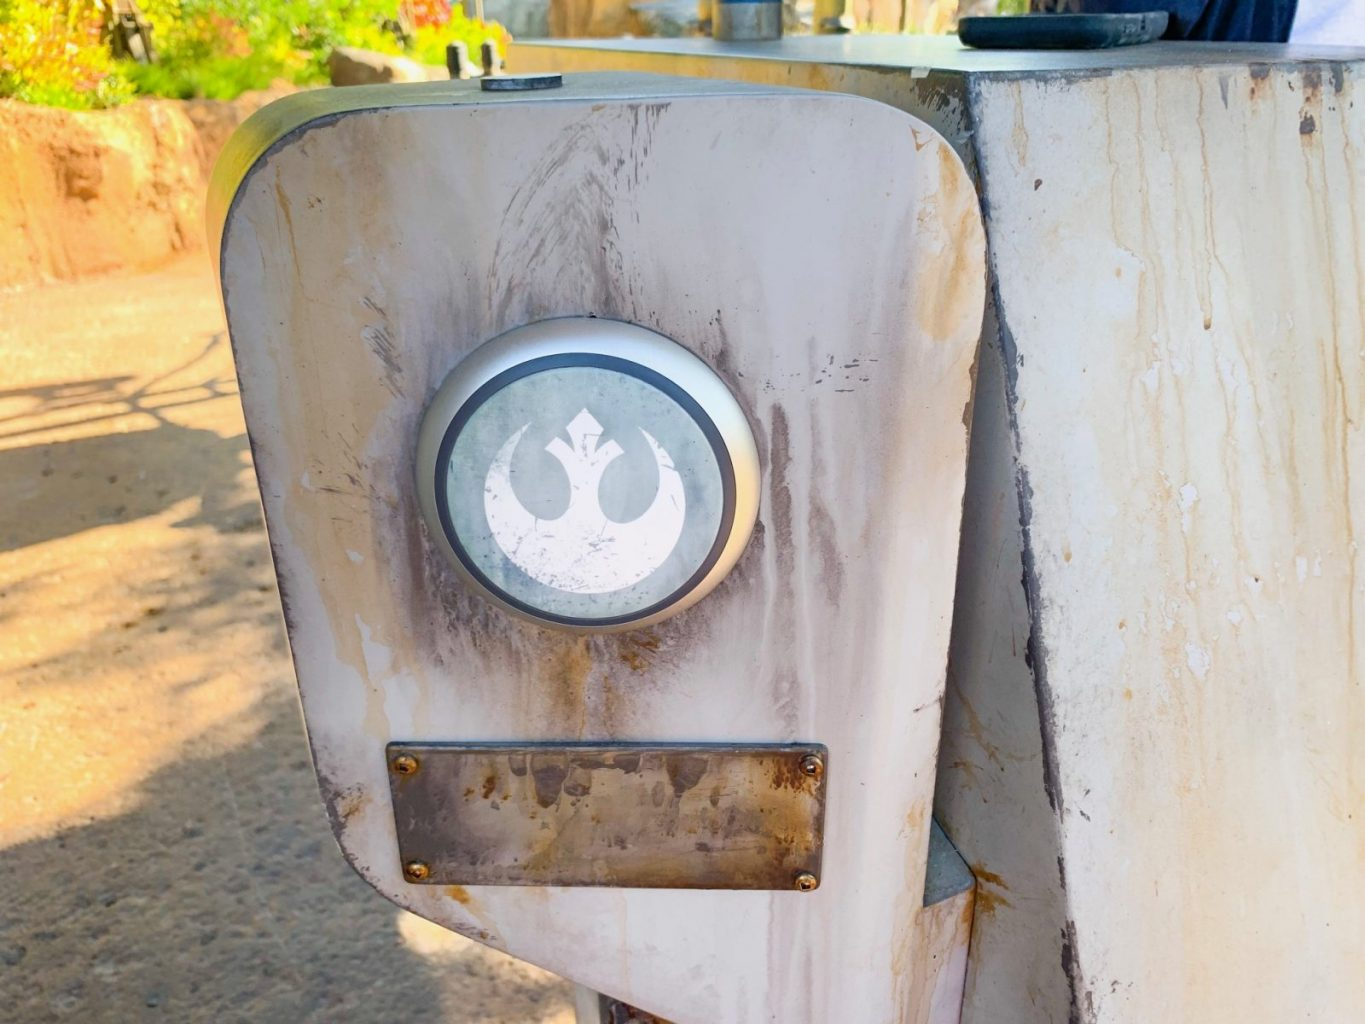 upcoming fastpass kiosk for Star Wars Ride At Disney World